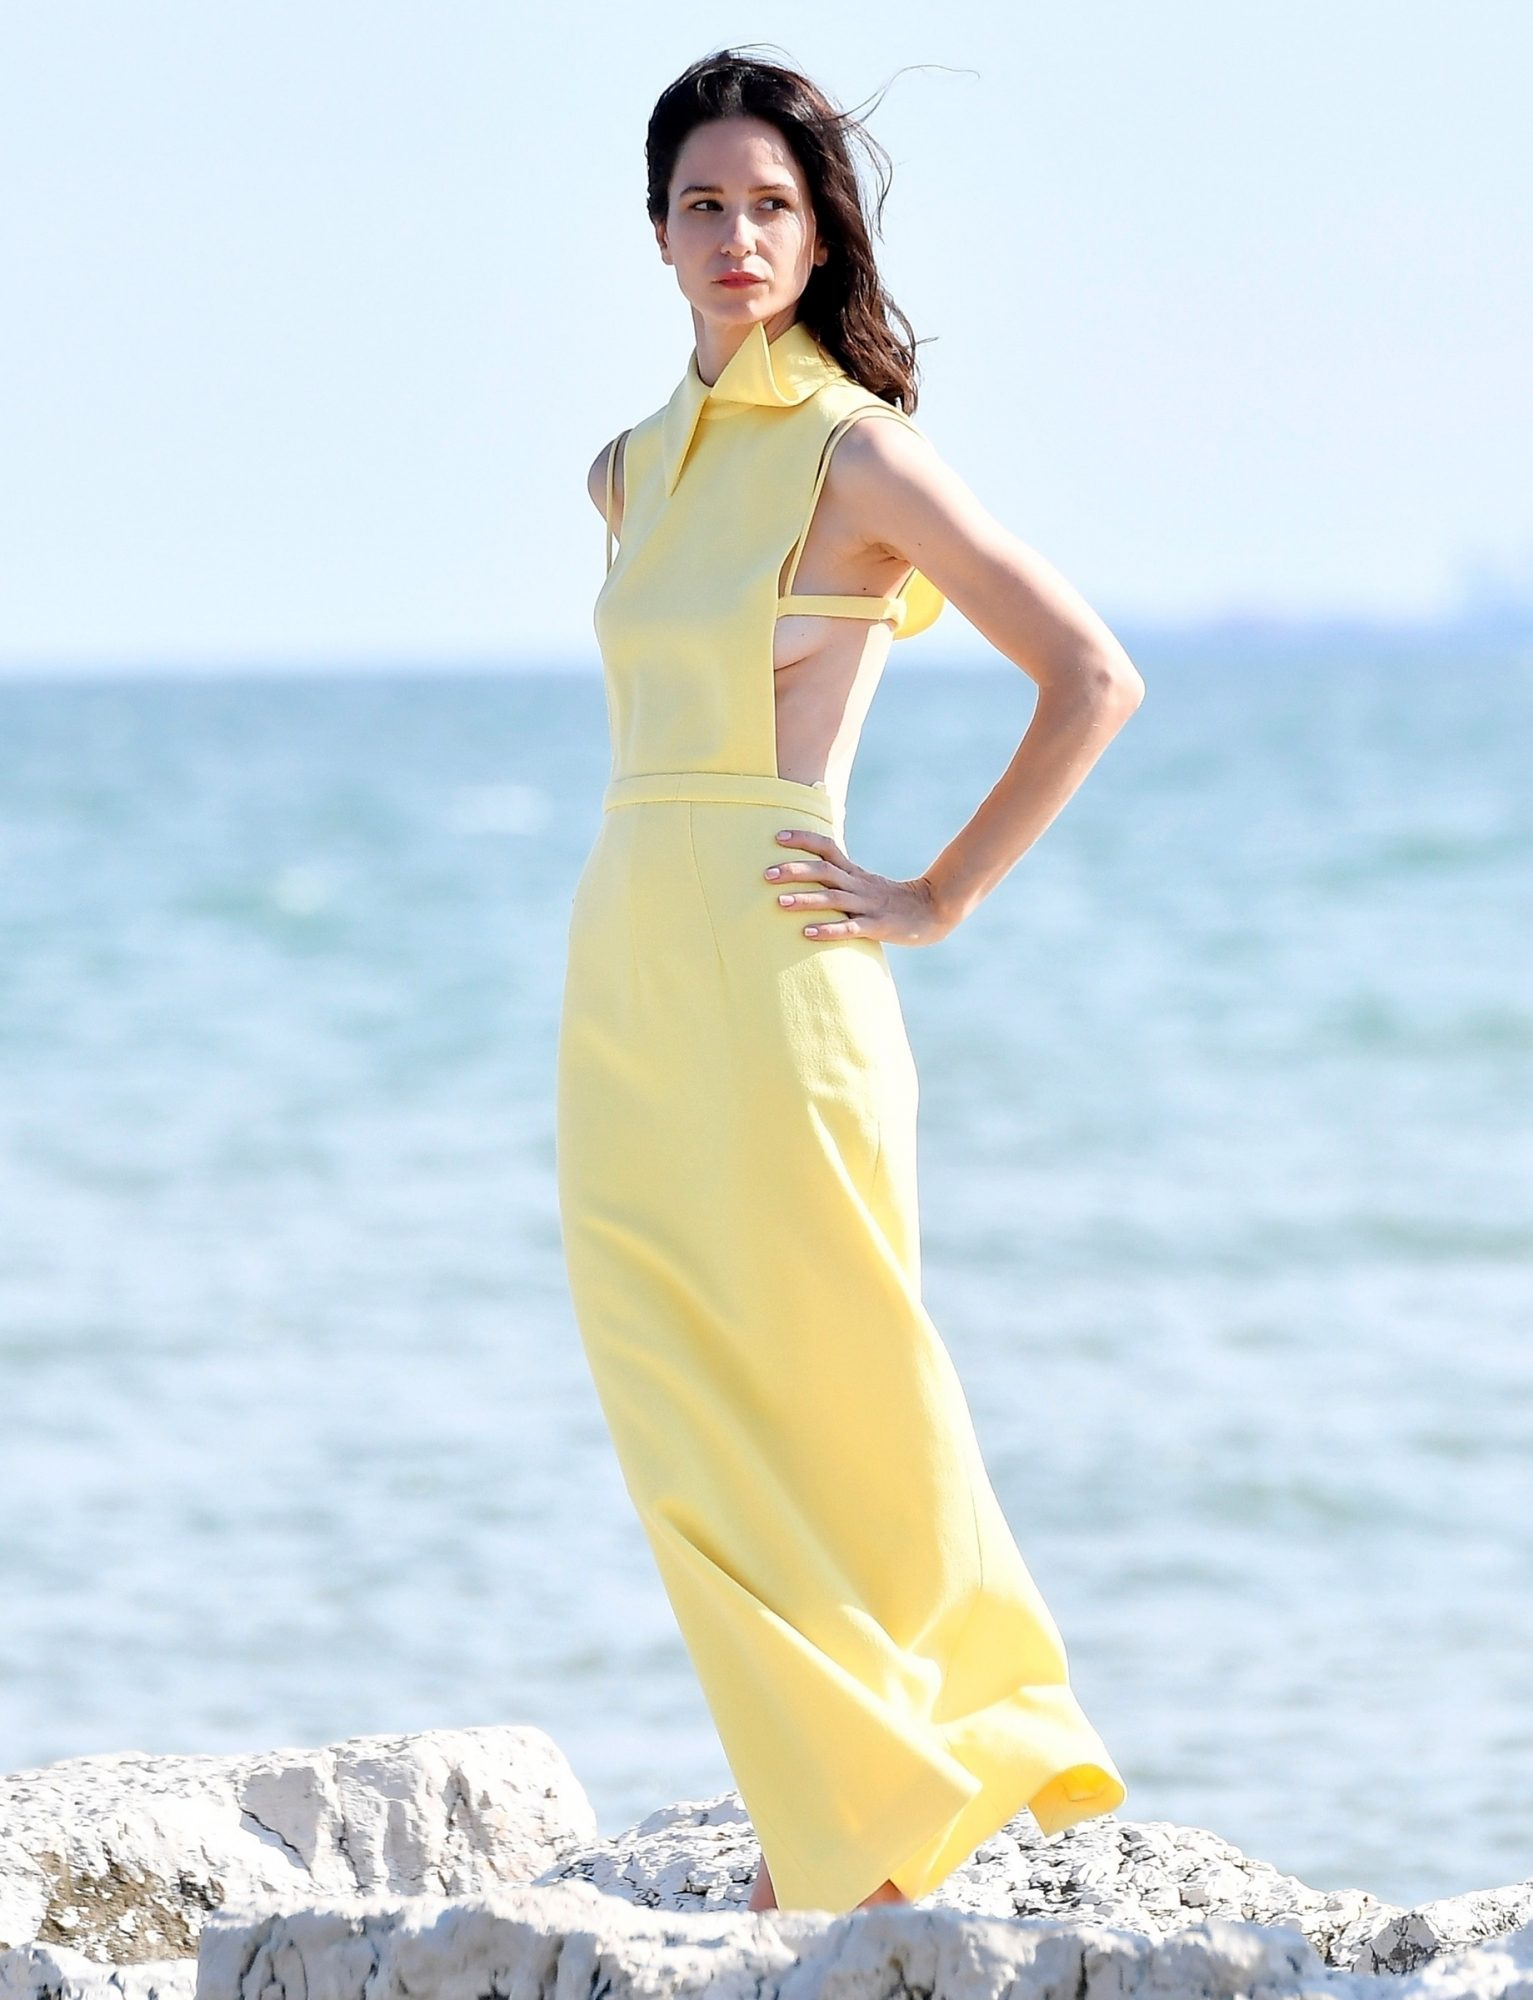 Katherine Waterston spotted at the beach during a photo shoot